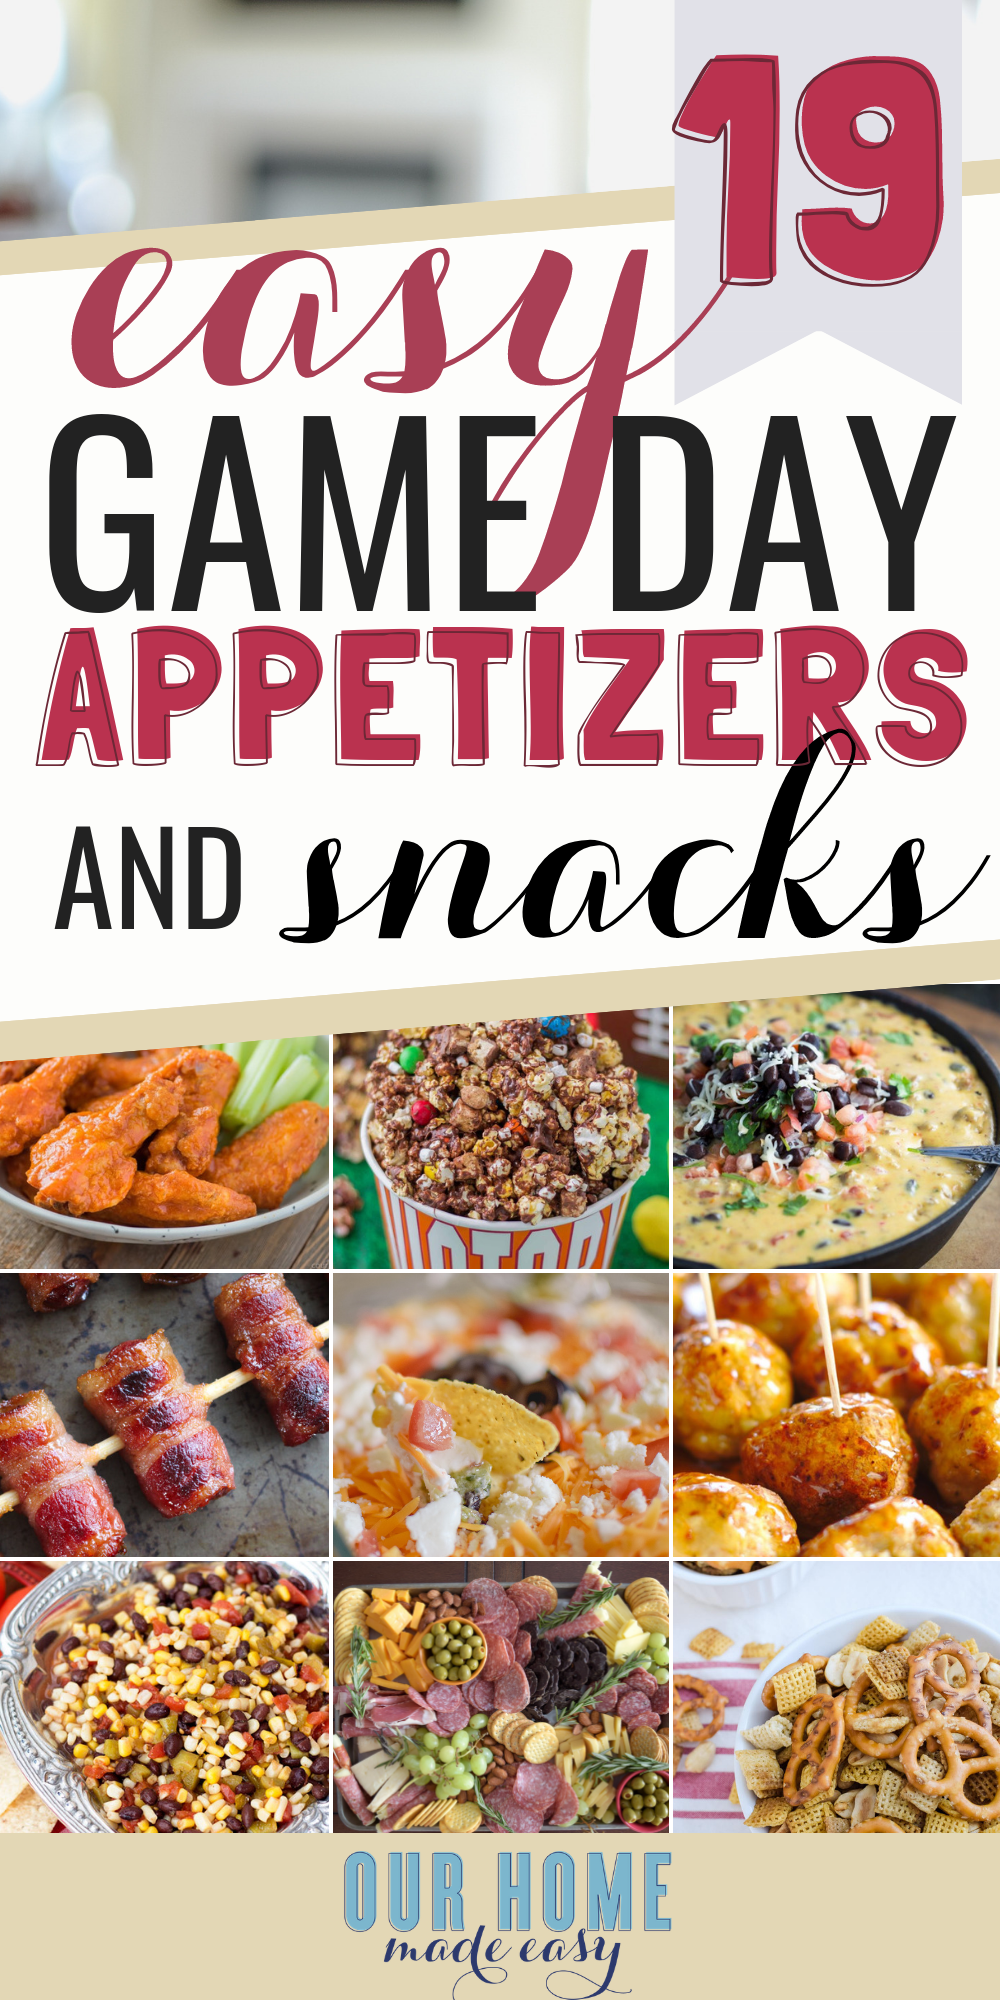 Make game day even better with these easy game day snacks & football finger foods! You can them make ahead of time, warm them up if needed, and be party ready quickly! #appetizers #snacks #football #ourhomemadeeasy